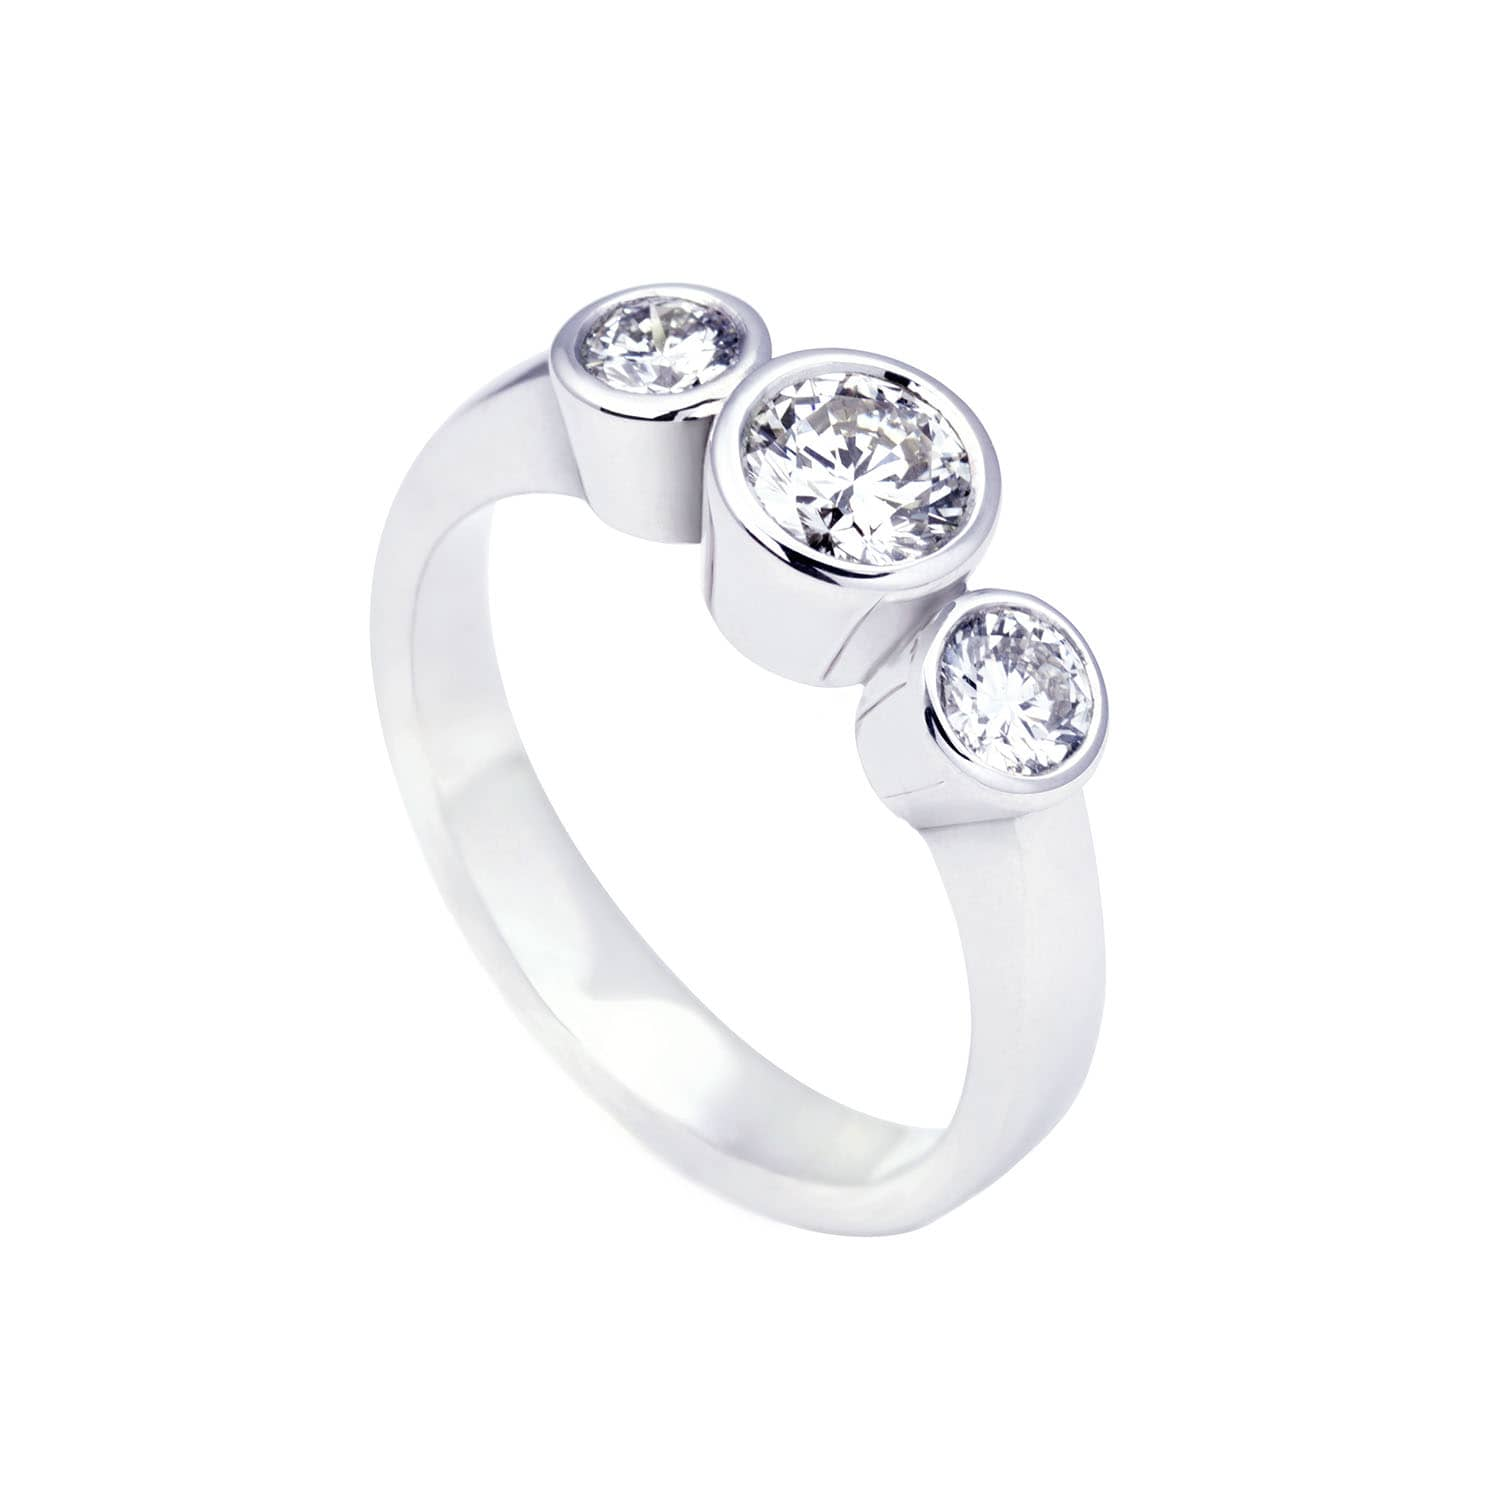 ring in diamonds engagement band both delicate is cover attention a eternity of setting getting style the entire pave and this diamond carats an settings rounded